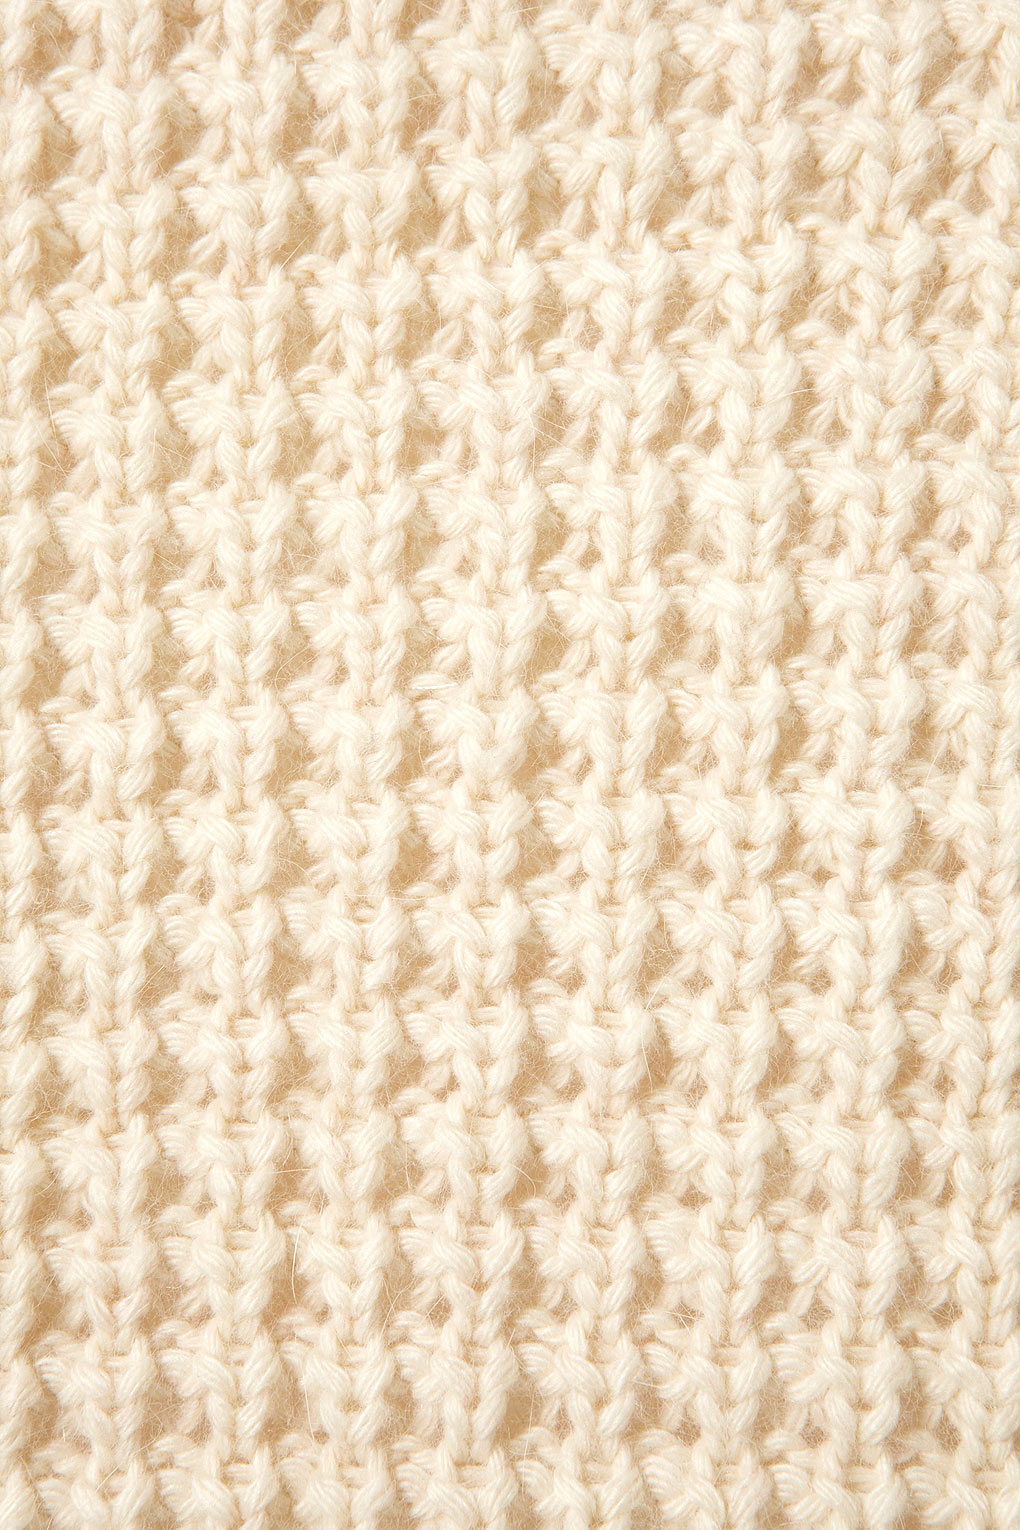 Lyst Topshop Knitted Waffle Stitch Cardi In Natural